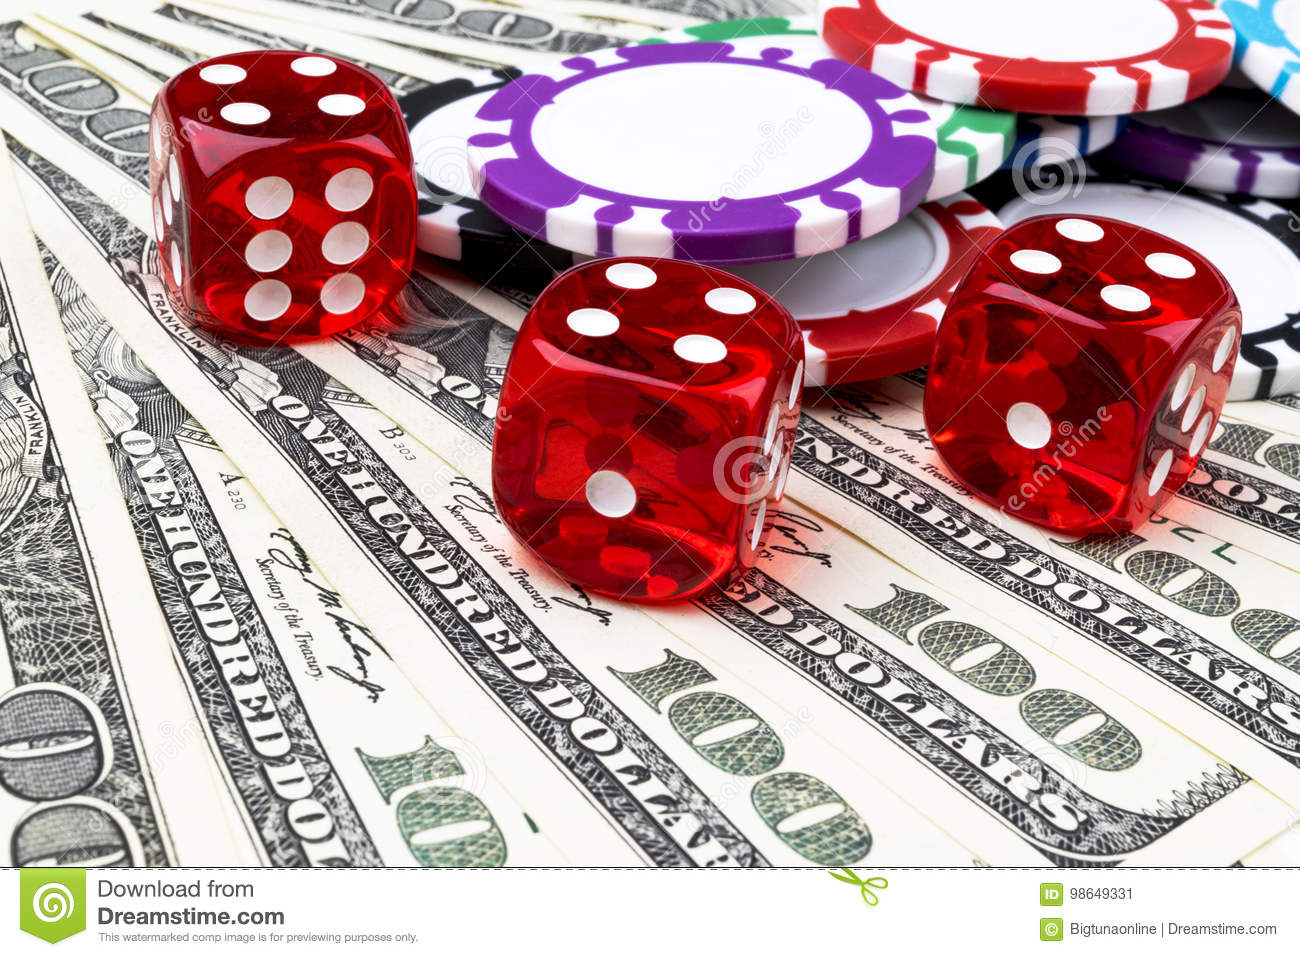 Stack Of Poker Chips With Dice Rolls On A Dollar Bills Money Poker Table At The Casino Poker Game Concept Playing A Game Stock Image Image Of Crooked Evening 98649331